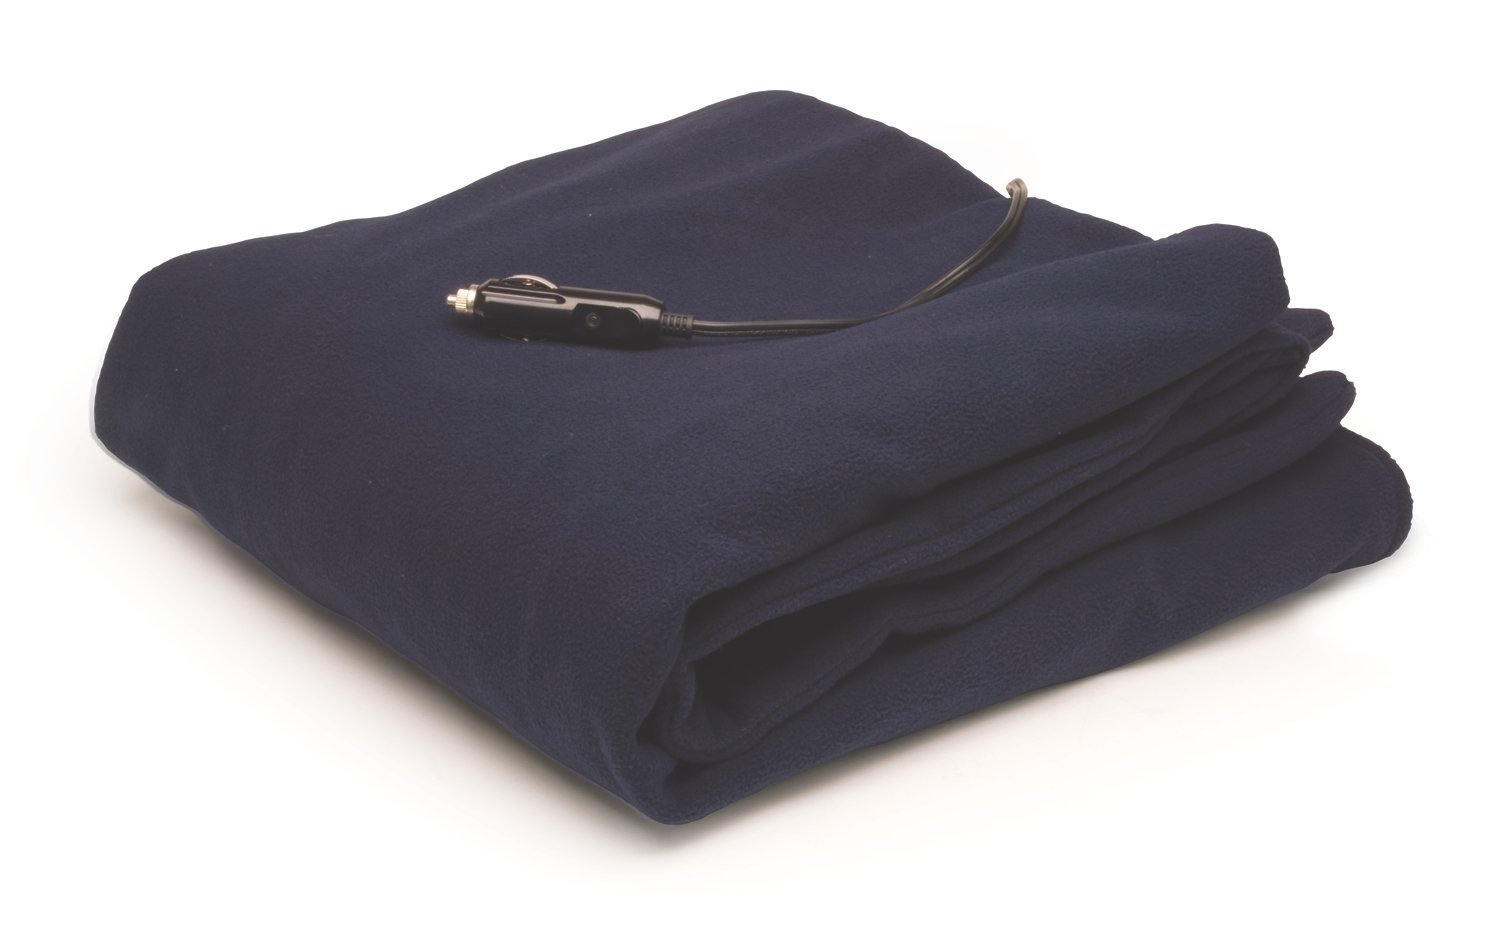 With Battery Heated Portable Blanket